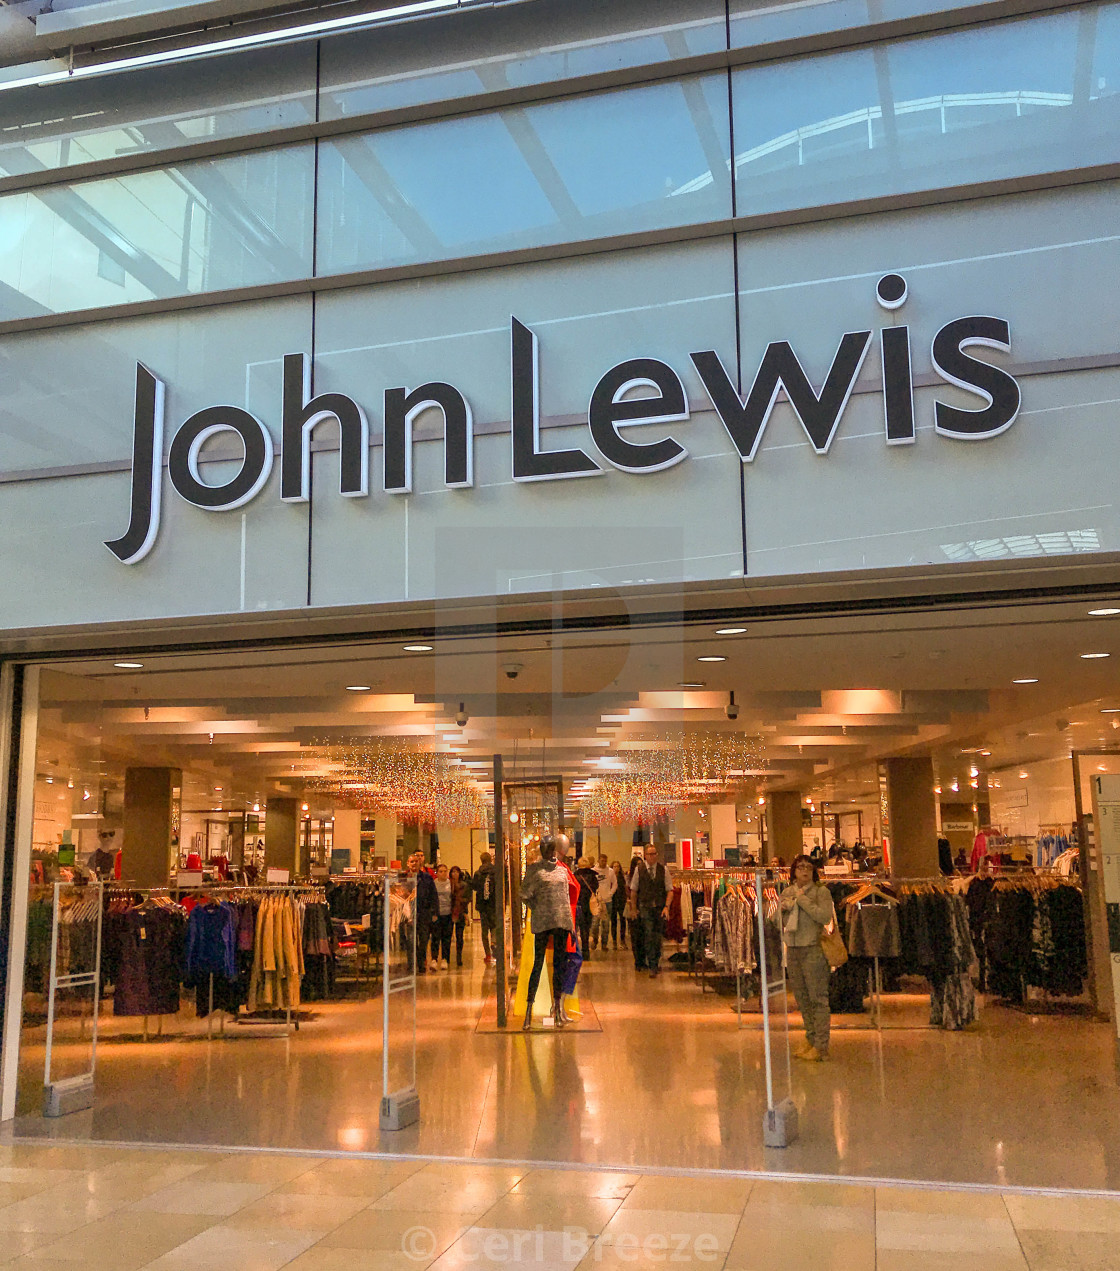 """Entrance to the John Lewis store in the St David's shopping centre in Cardiff"" stock image"